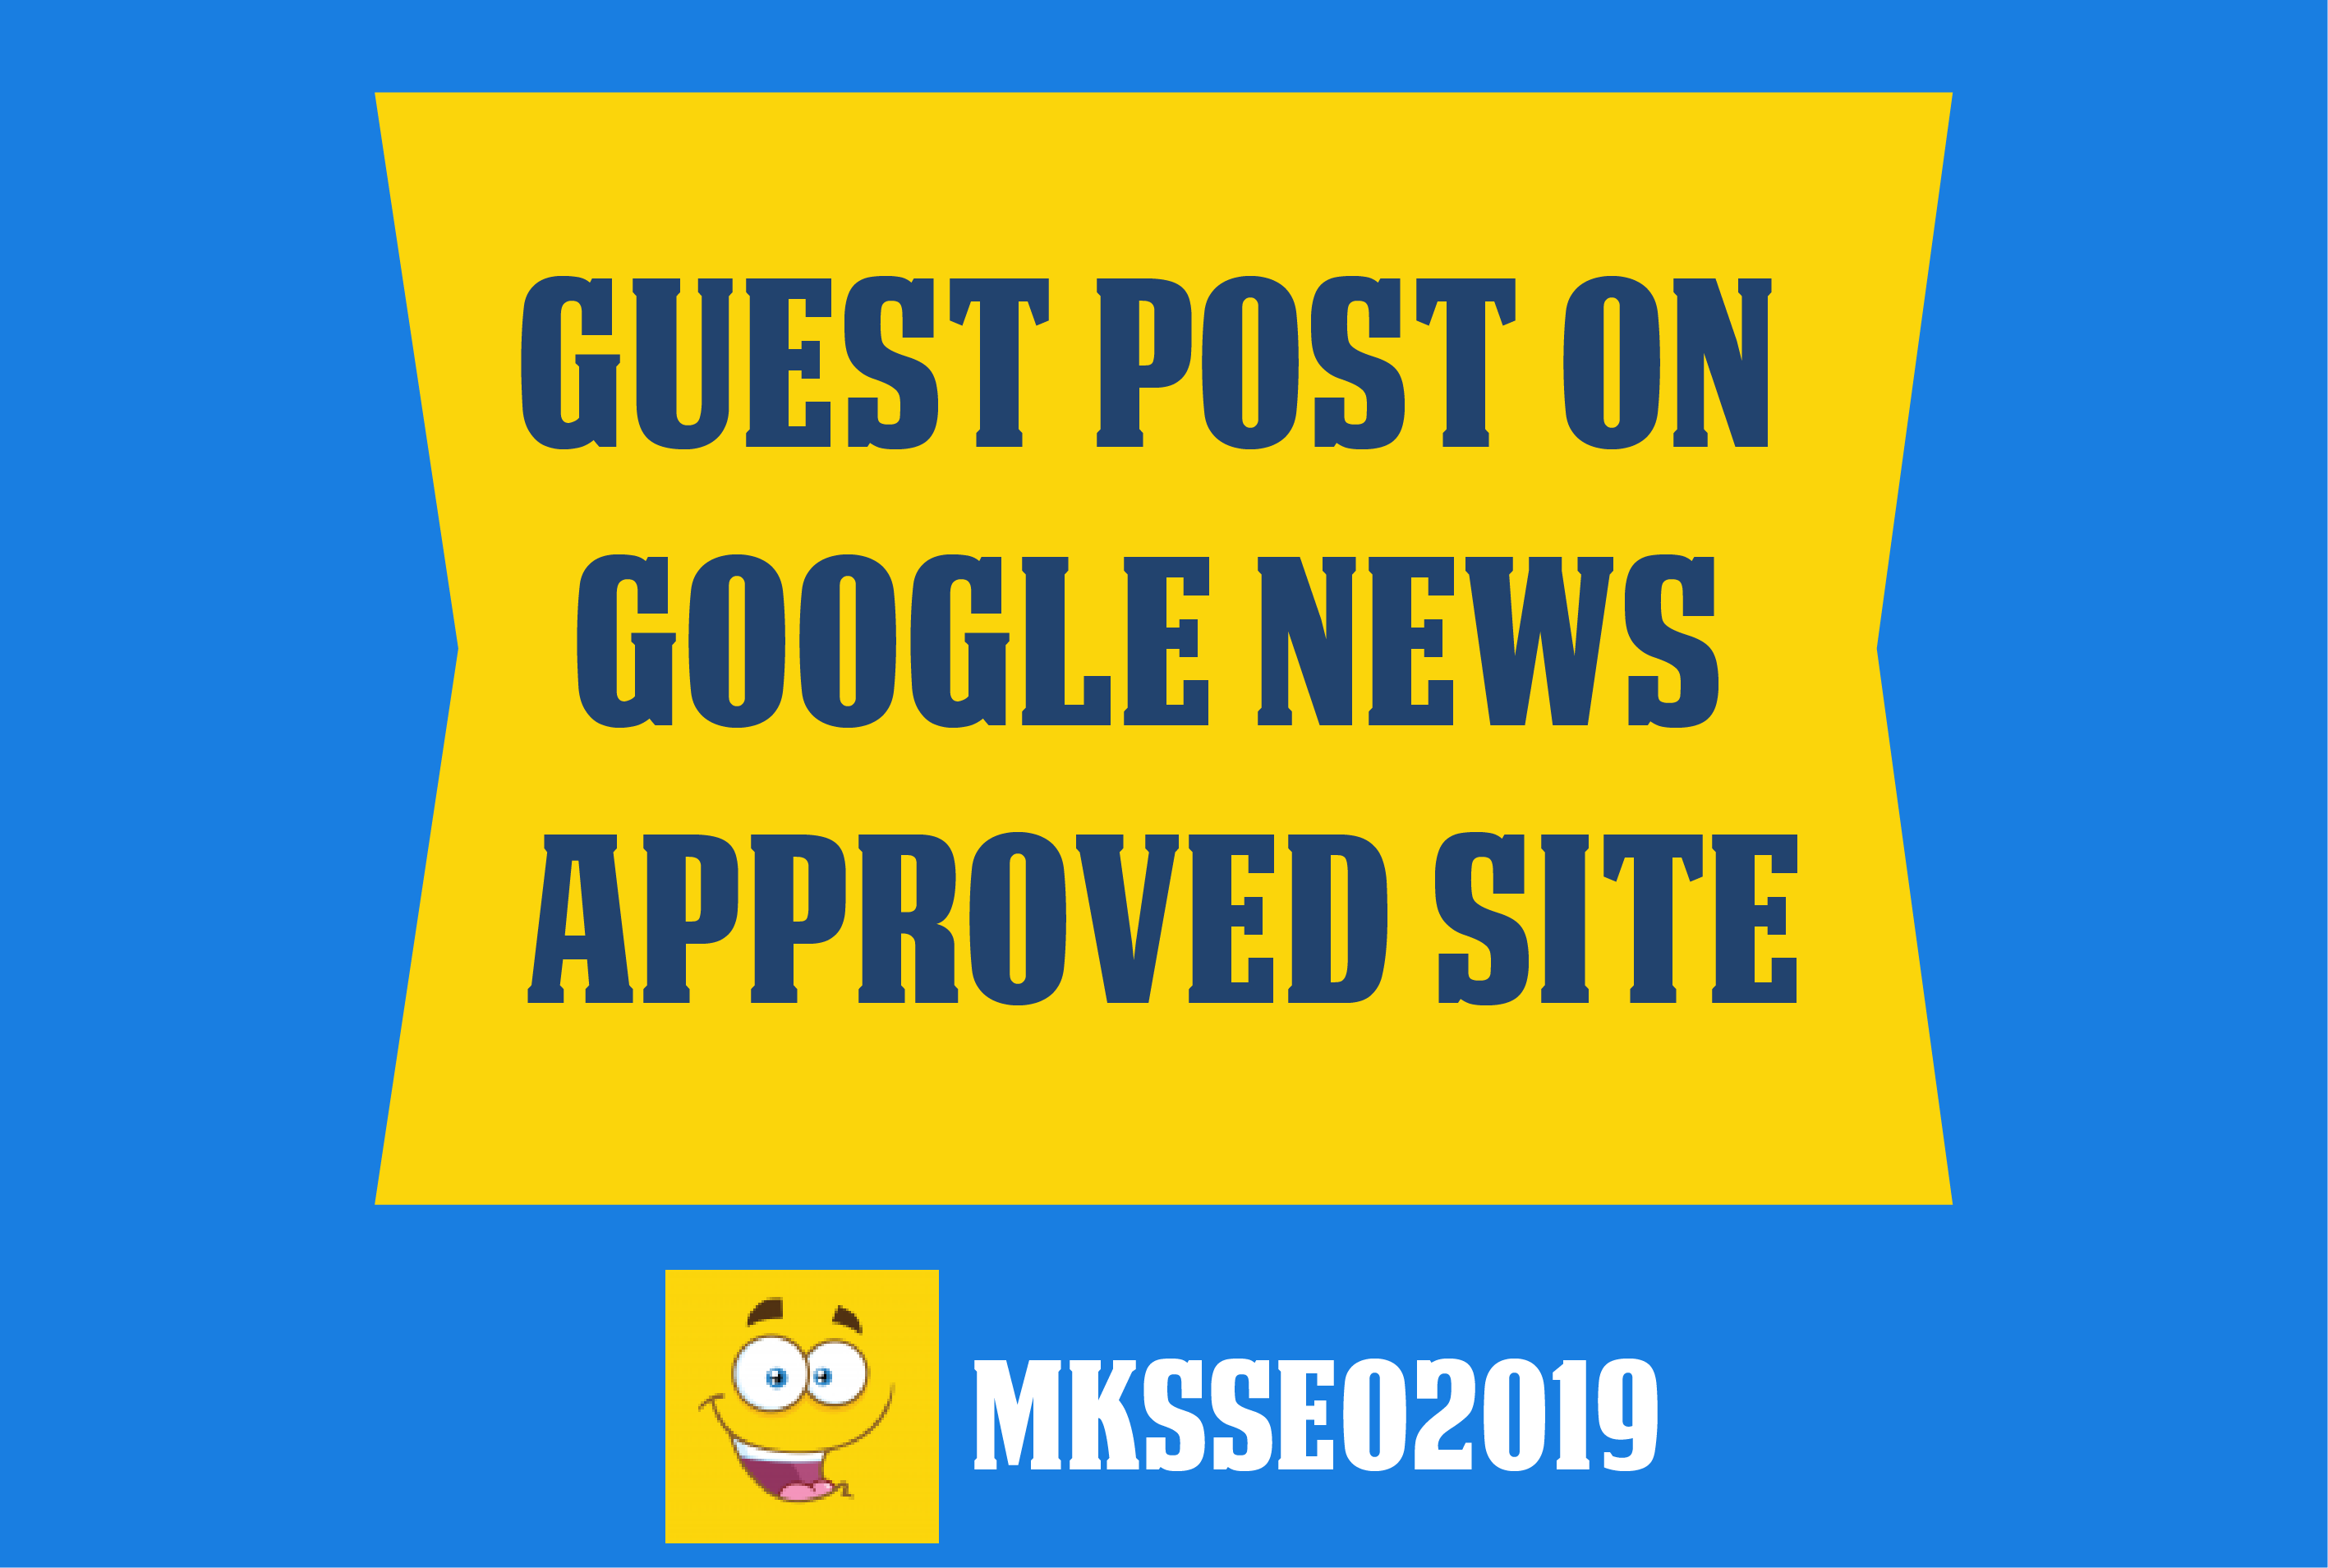 Guest Post on Google news approved Site